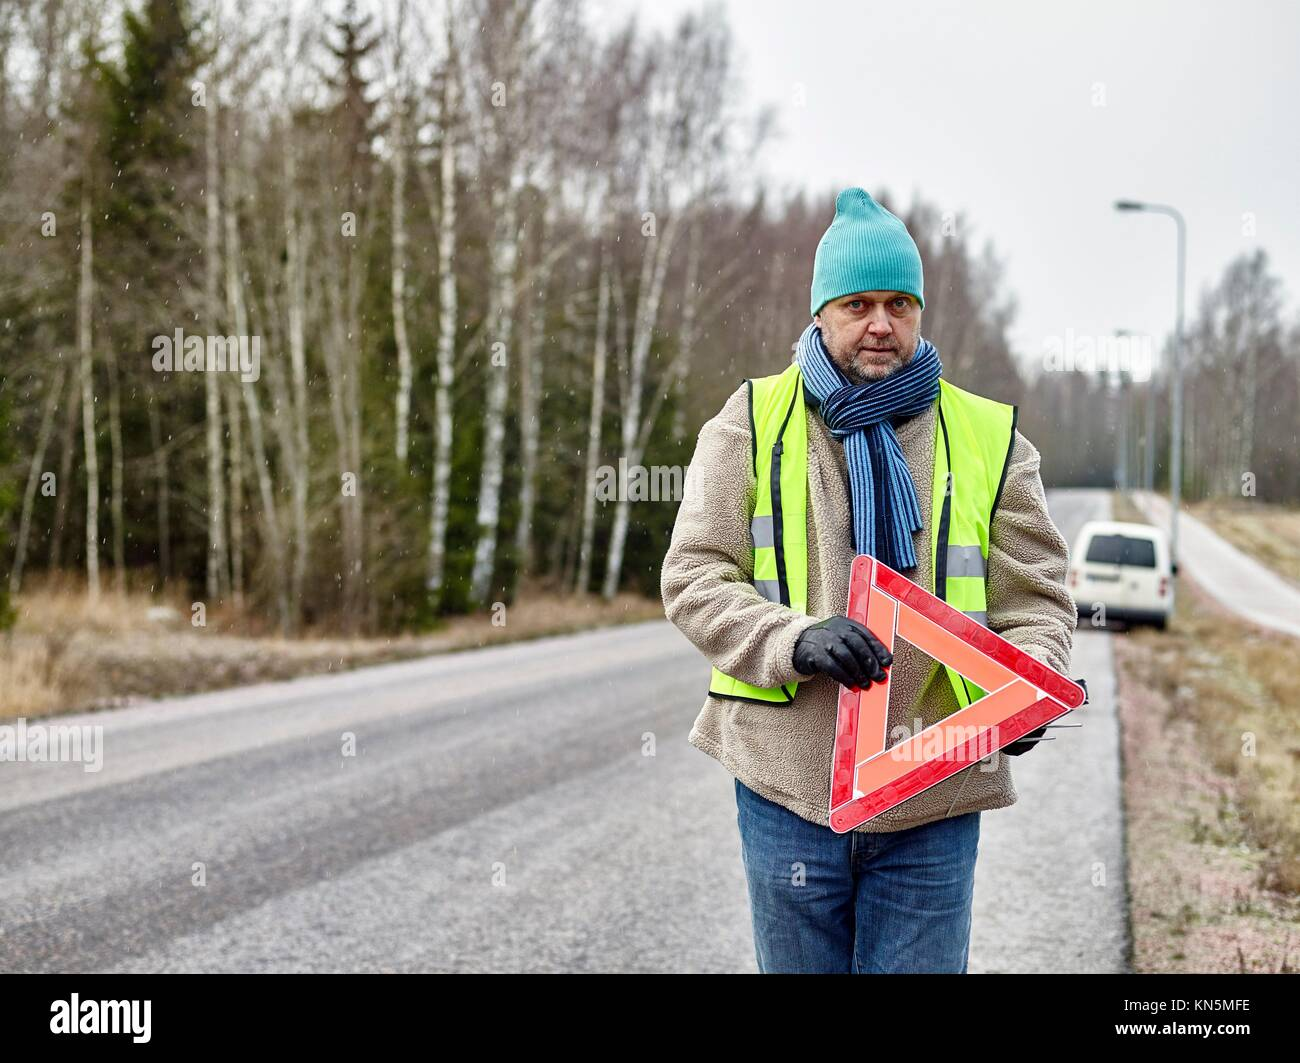 Mid adult man wearing reflector vest and he have a red warning triangle - road and vehicle on background. - Stock Image